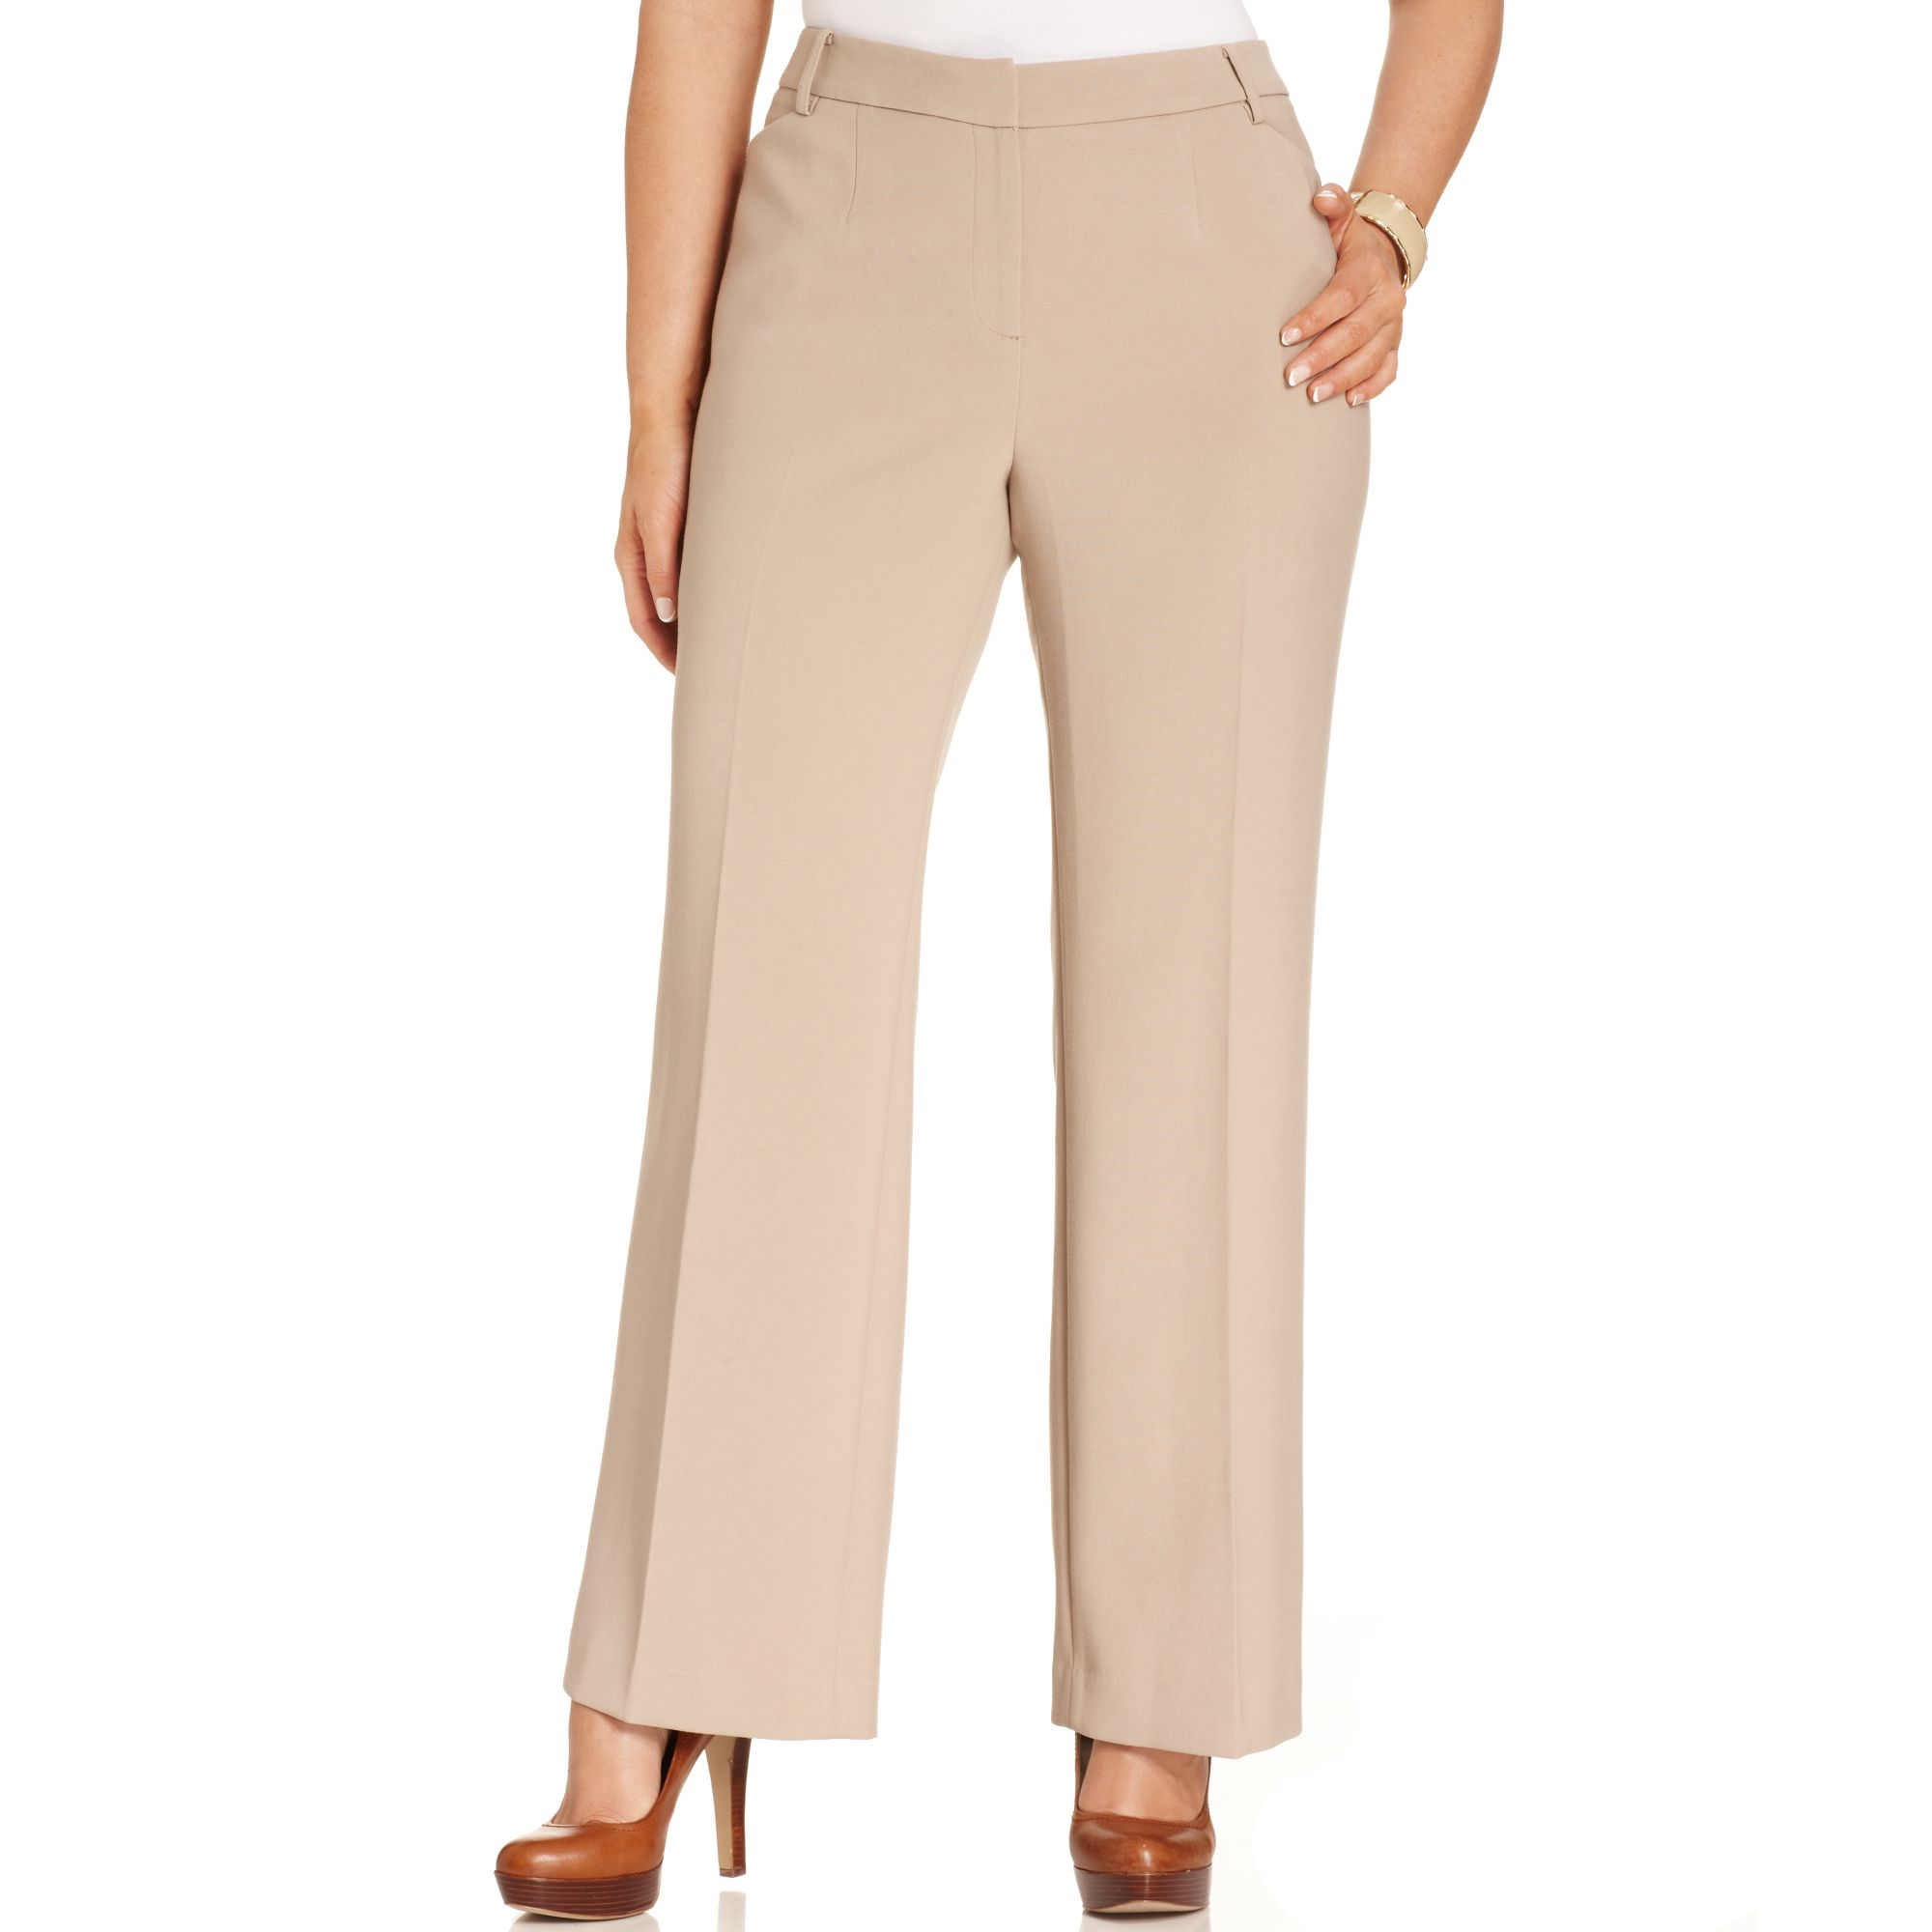 0f5f023a582a4 Lyst - Jones New York Collection Plus Size Modern Fit Wideleg Pants ...